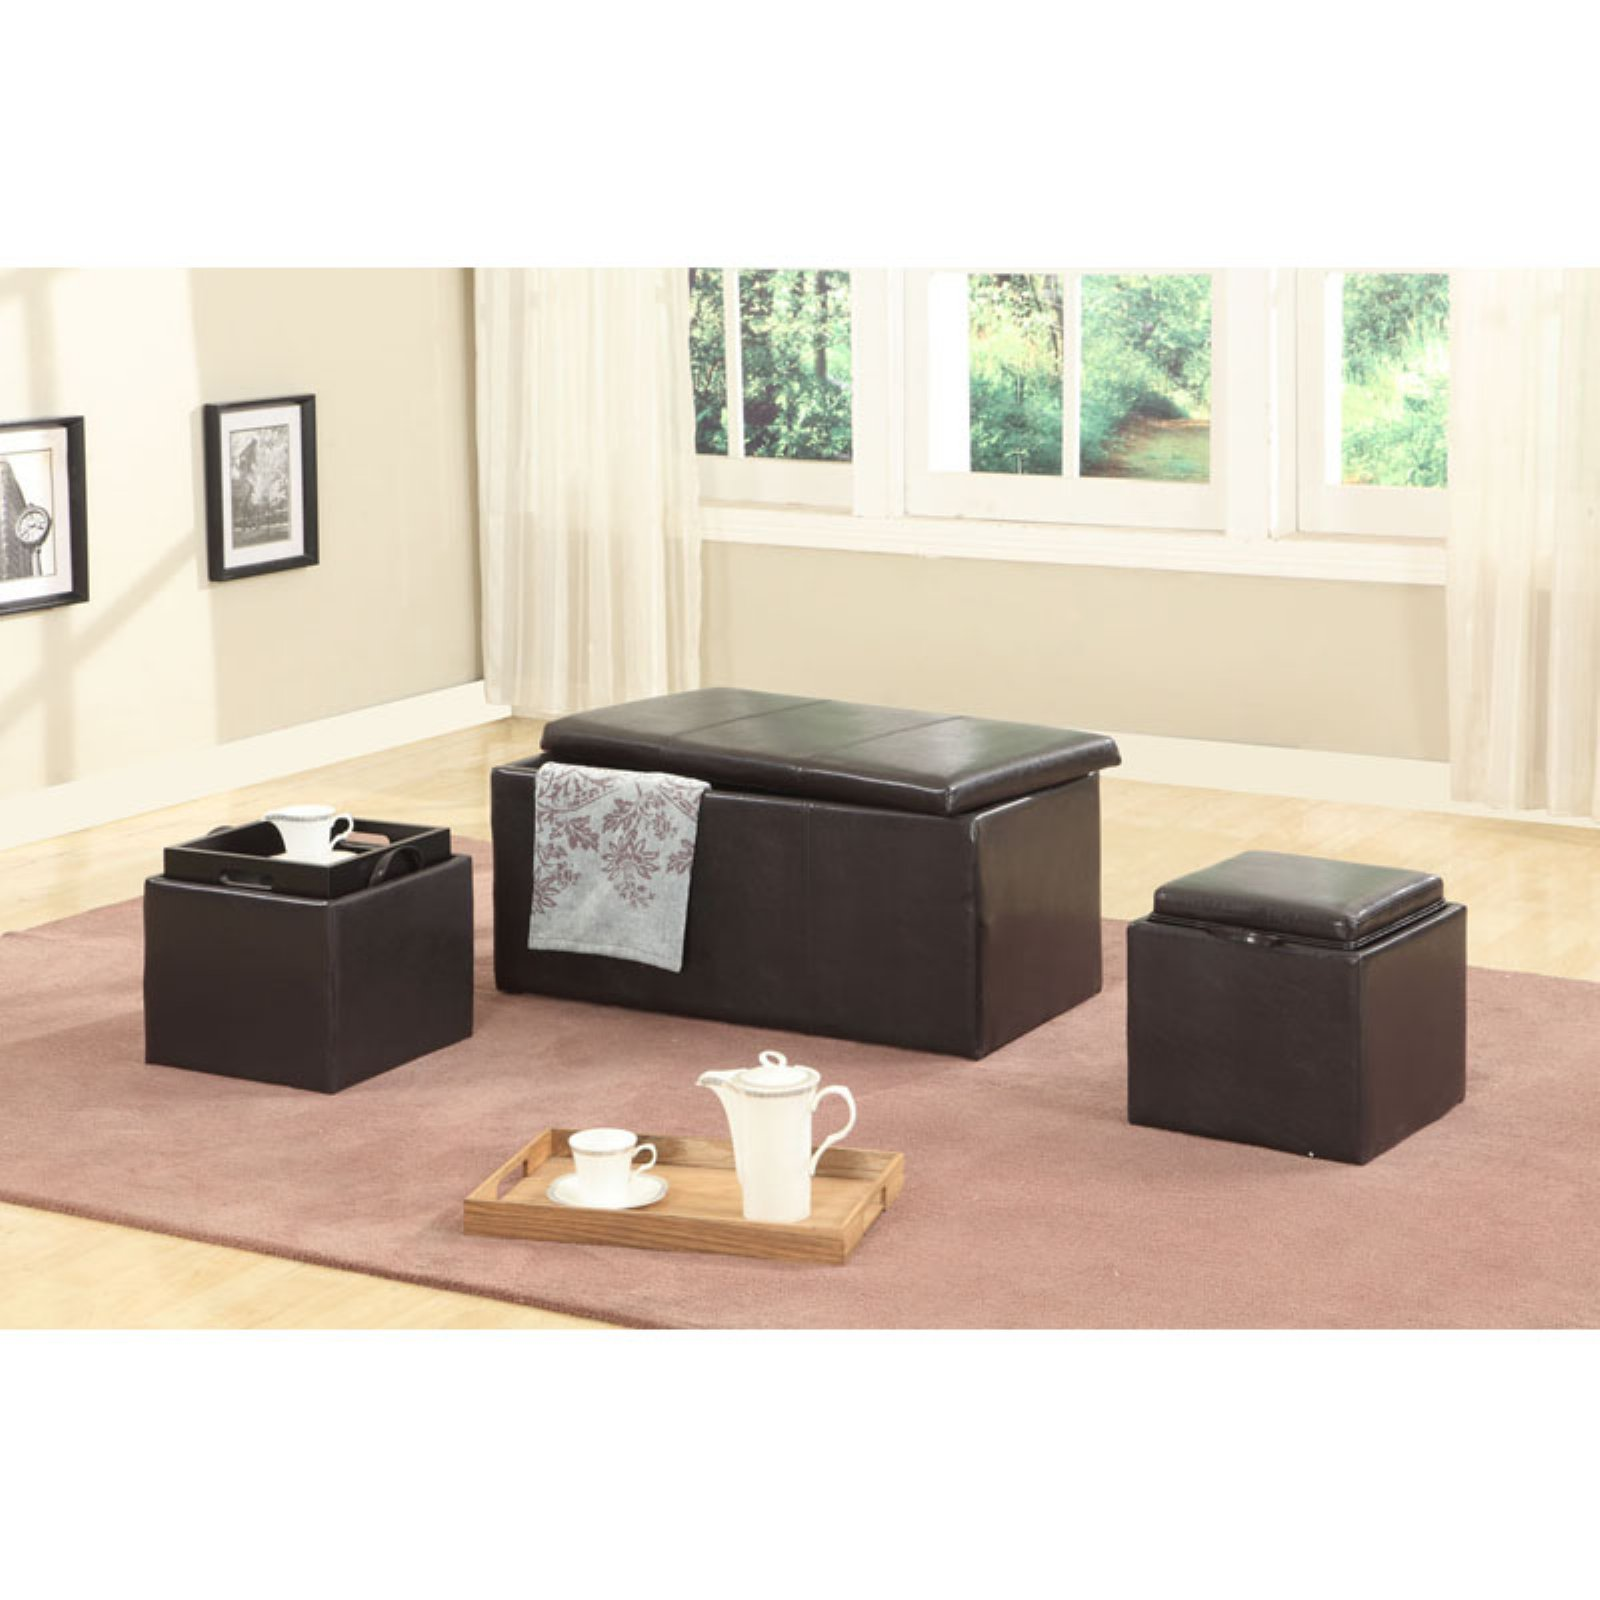 Roundhill Trina Triple Storage Ottomans with Wooden Trays, Brown